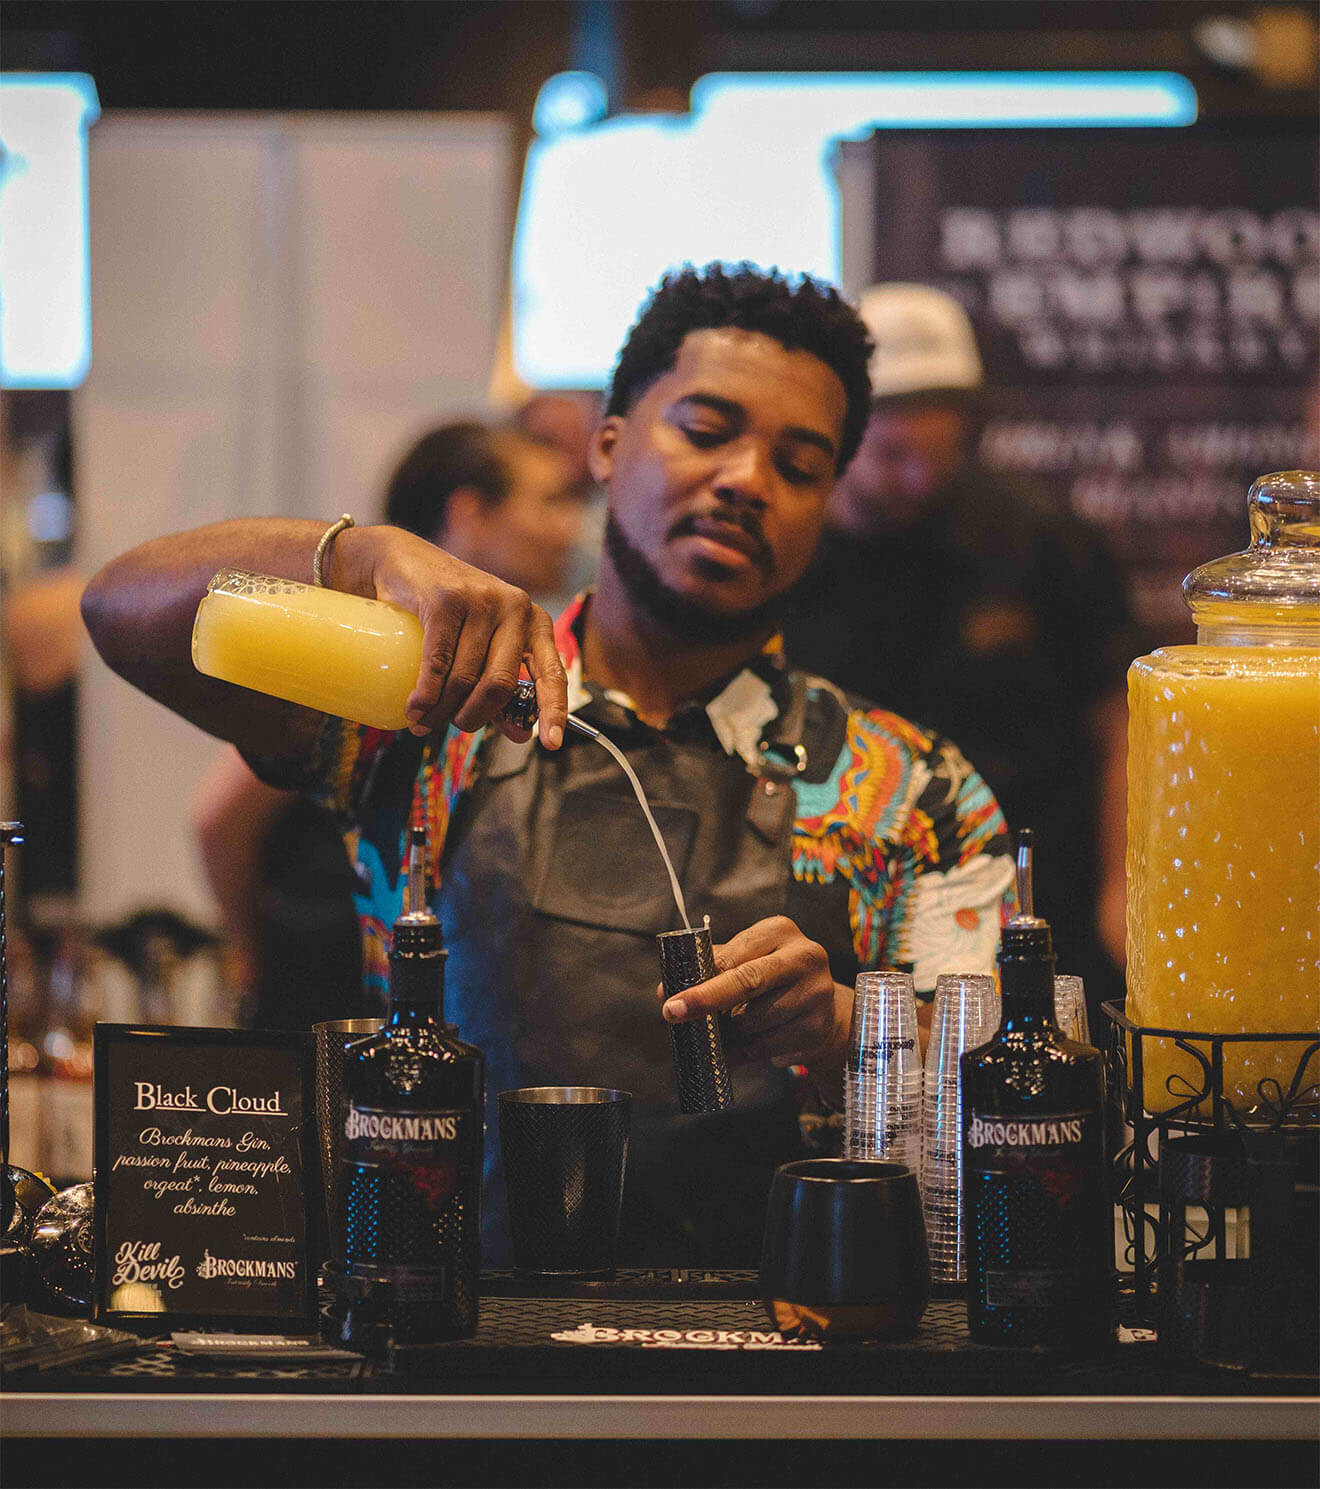 NYCE Brockmans Gin Bartender Serves up Black Cloud Cocktail